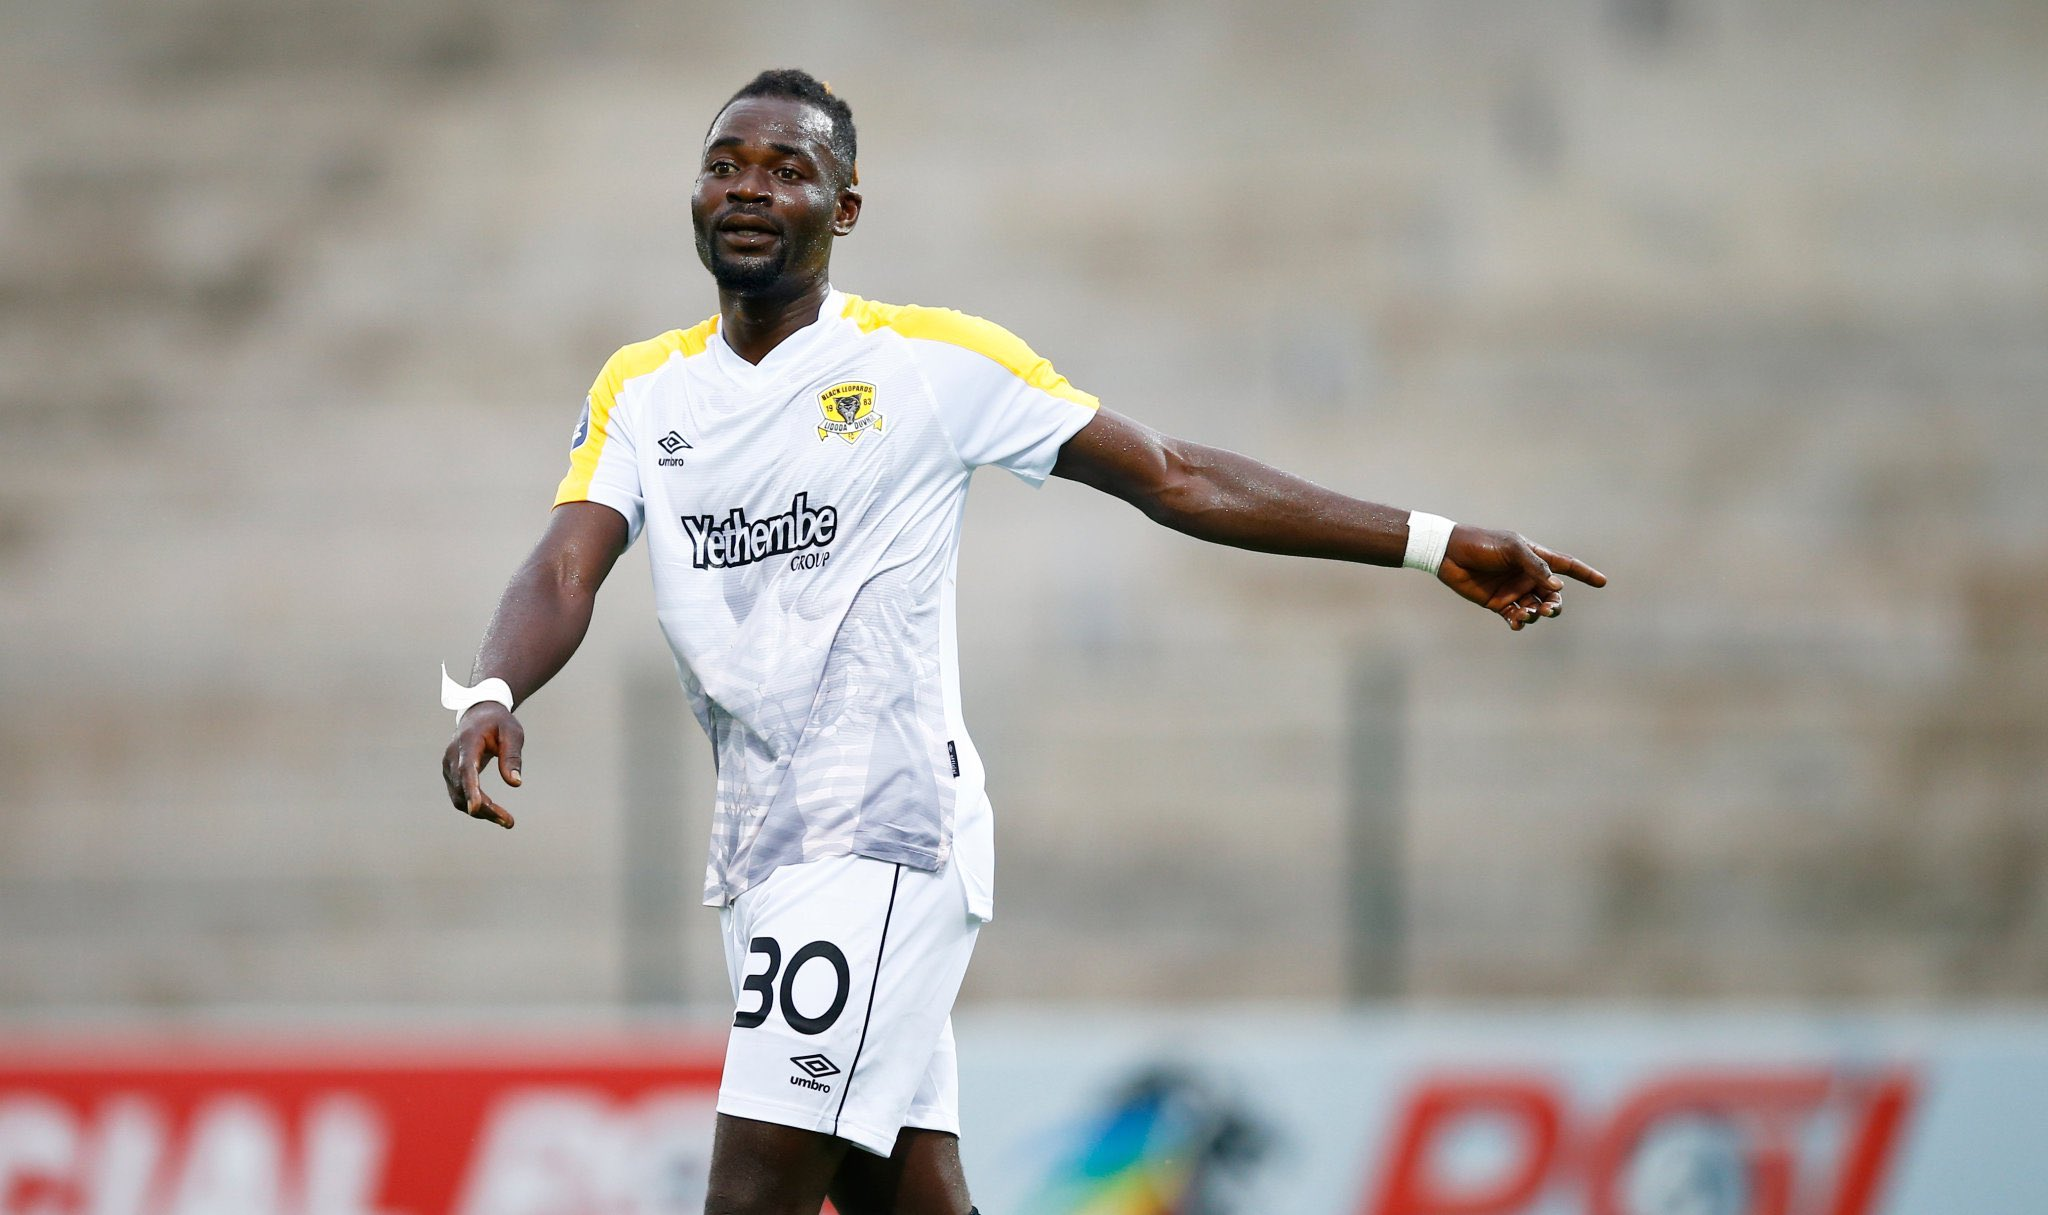 ANAS DOUBLE HELPS LEOPARDS DOWN ARROWS